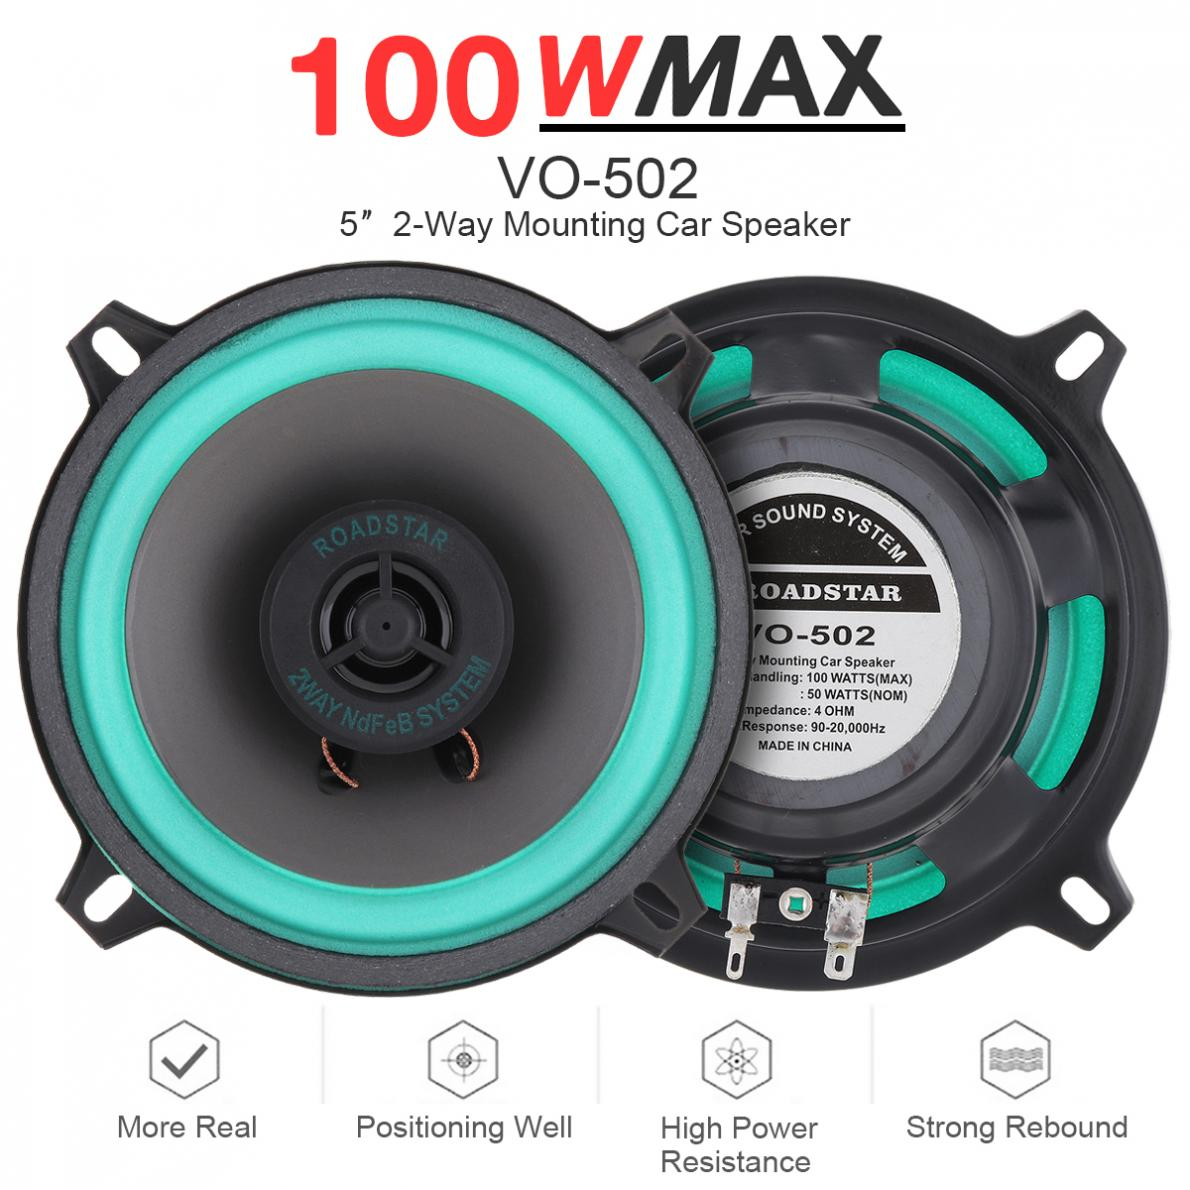 1pcs 5 Inch 100W Universal <font><b>Car</b></font> HiFi Coaxial <font><b>Speaker</b></font> Vehicle Door Auto <font><b>Audio</b></font> Music Stereo Full Range Frequency <font><b>Speakers</b></font> for <font><b>Cars</b></font> image